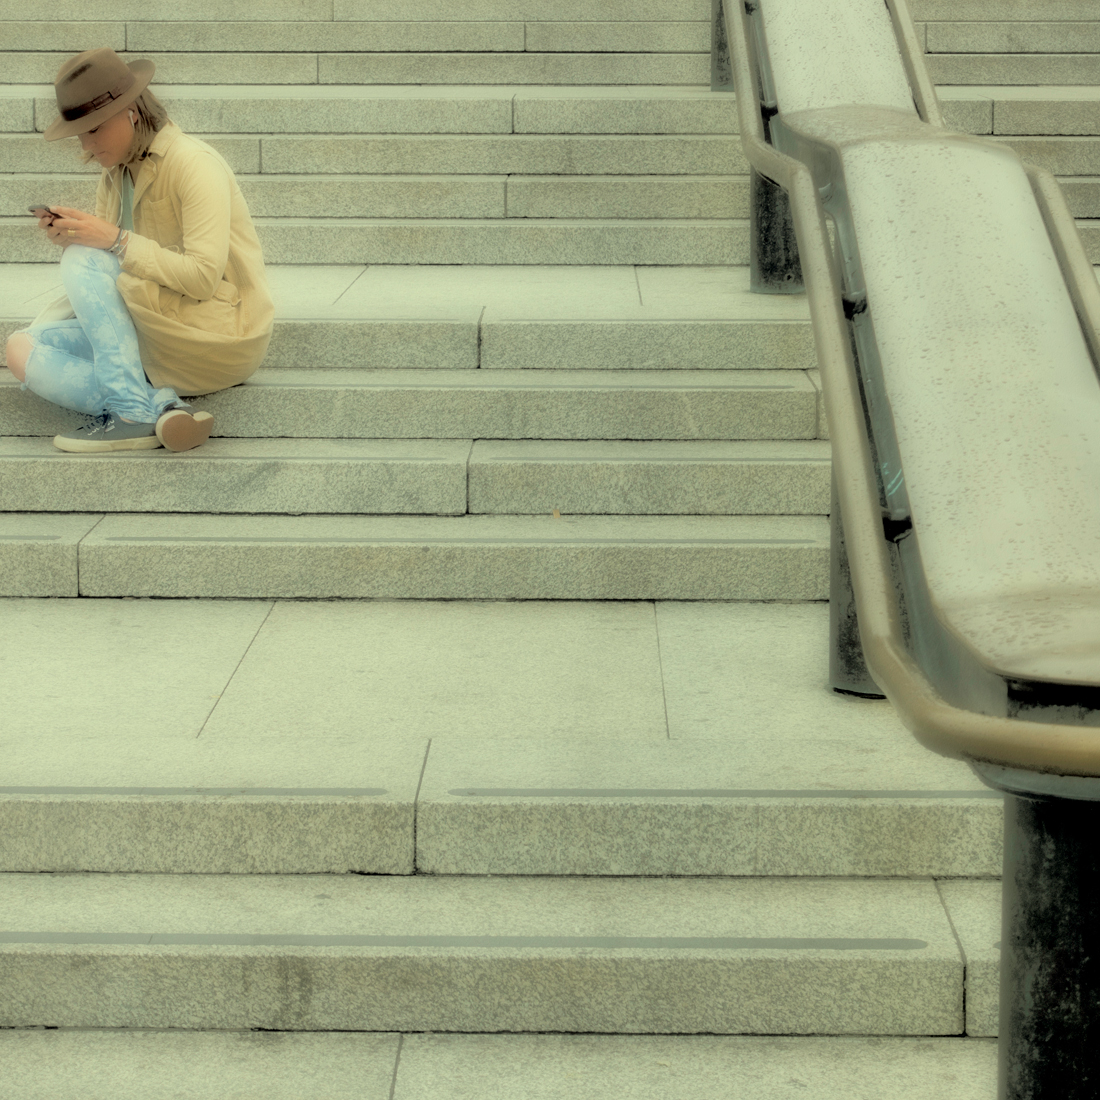 Stairs and Young Girl with Telephone